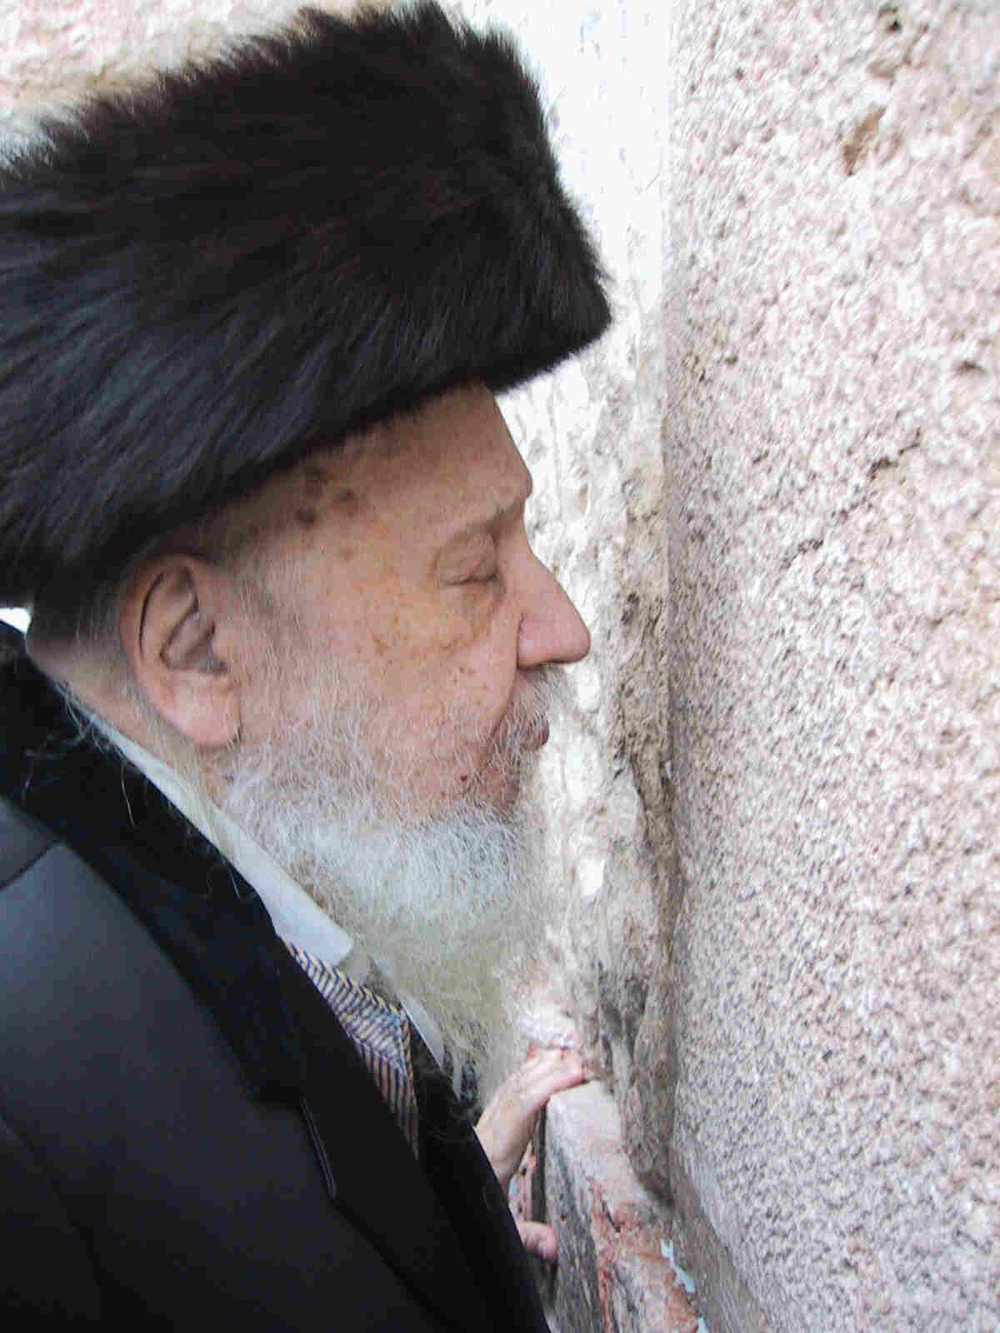 Click photo to download. Caption: Rabbi Levi Yitzhak Horowitz, known as the Bostoner Rebbe, at the Western Wall. Credit: Heshel/Wikimedia Commons.